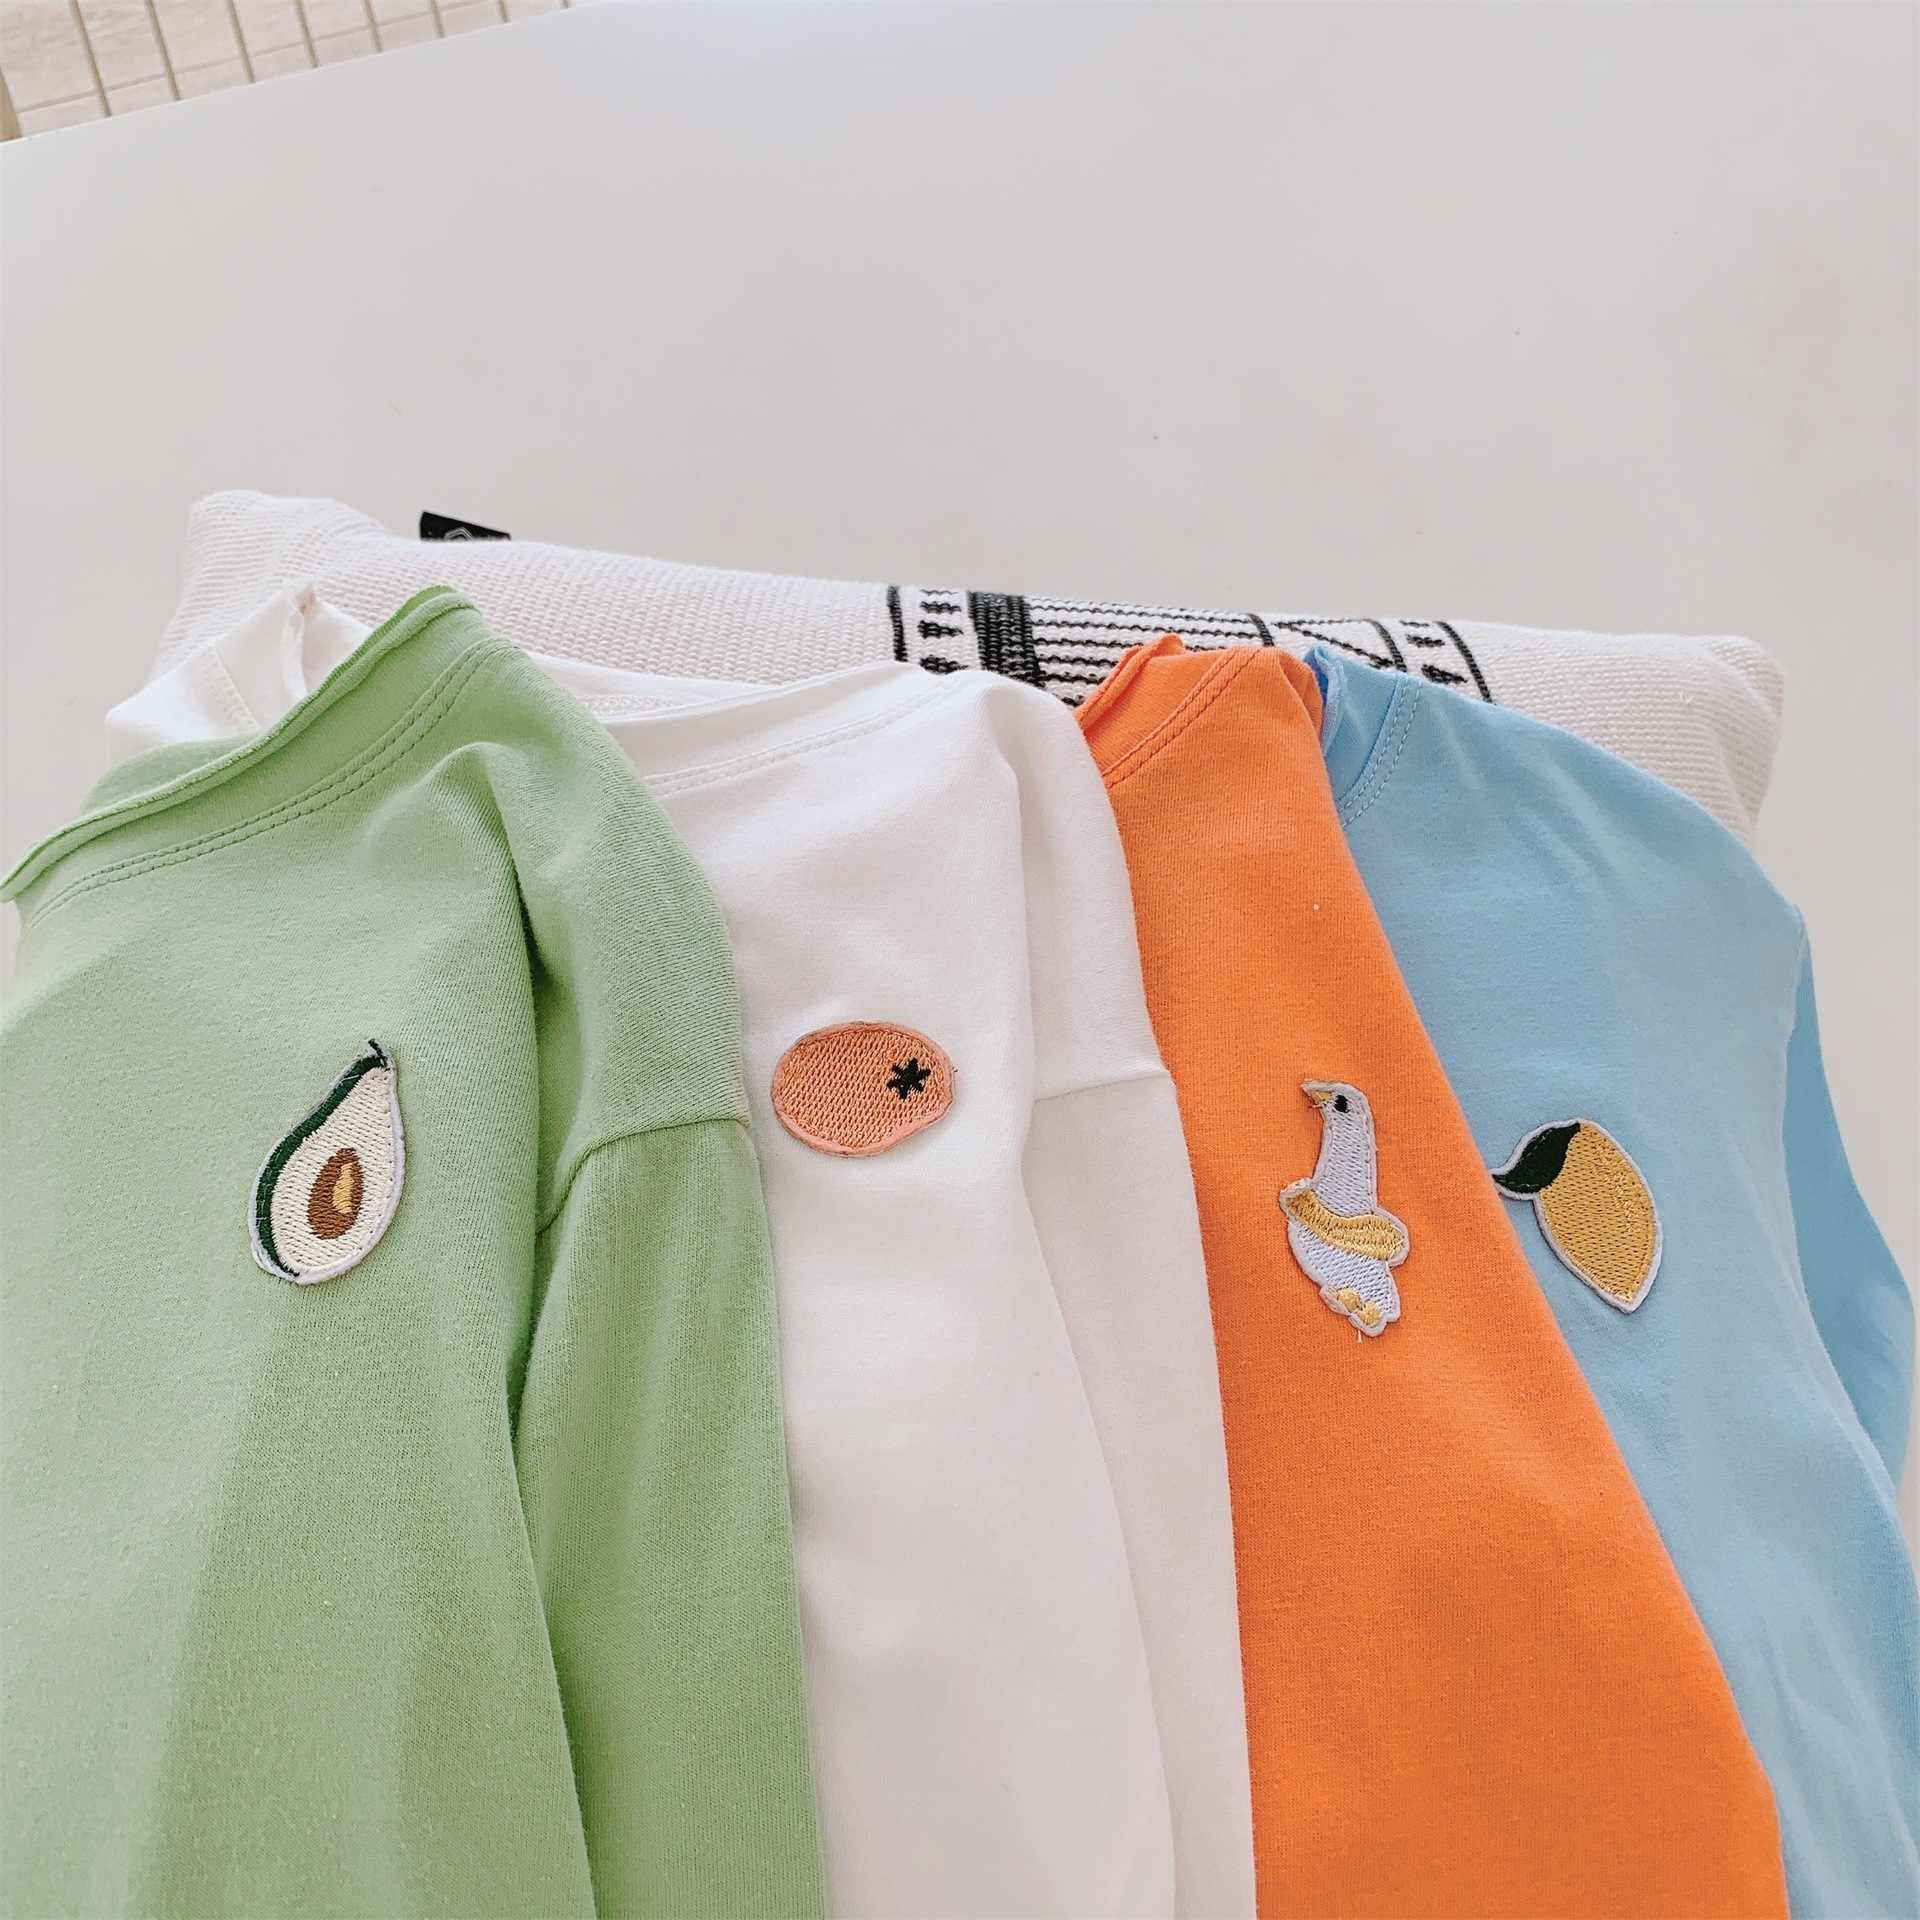 Spring Autumn boys girls cute fruit embroidery long sleeve T shirts kids candy color cotton all-match clothes Tees